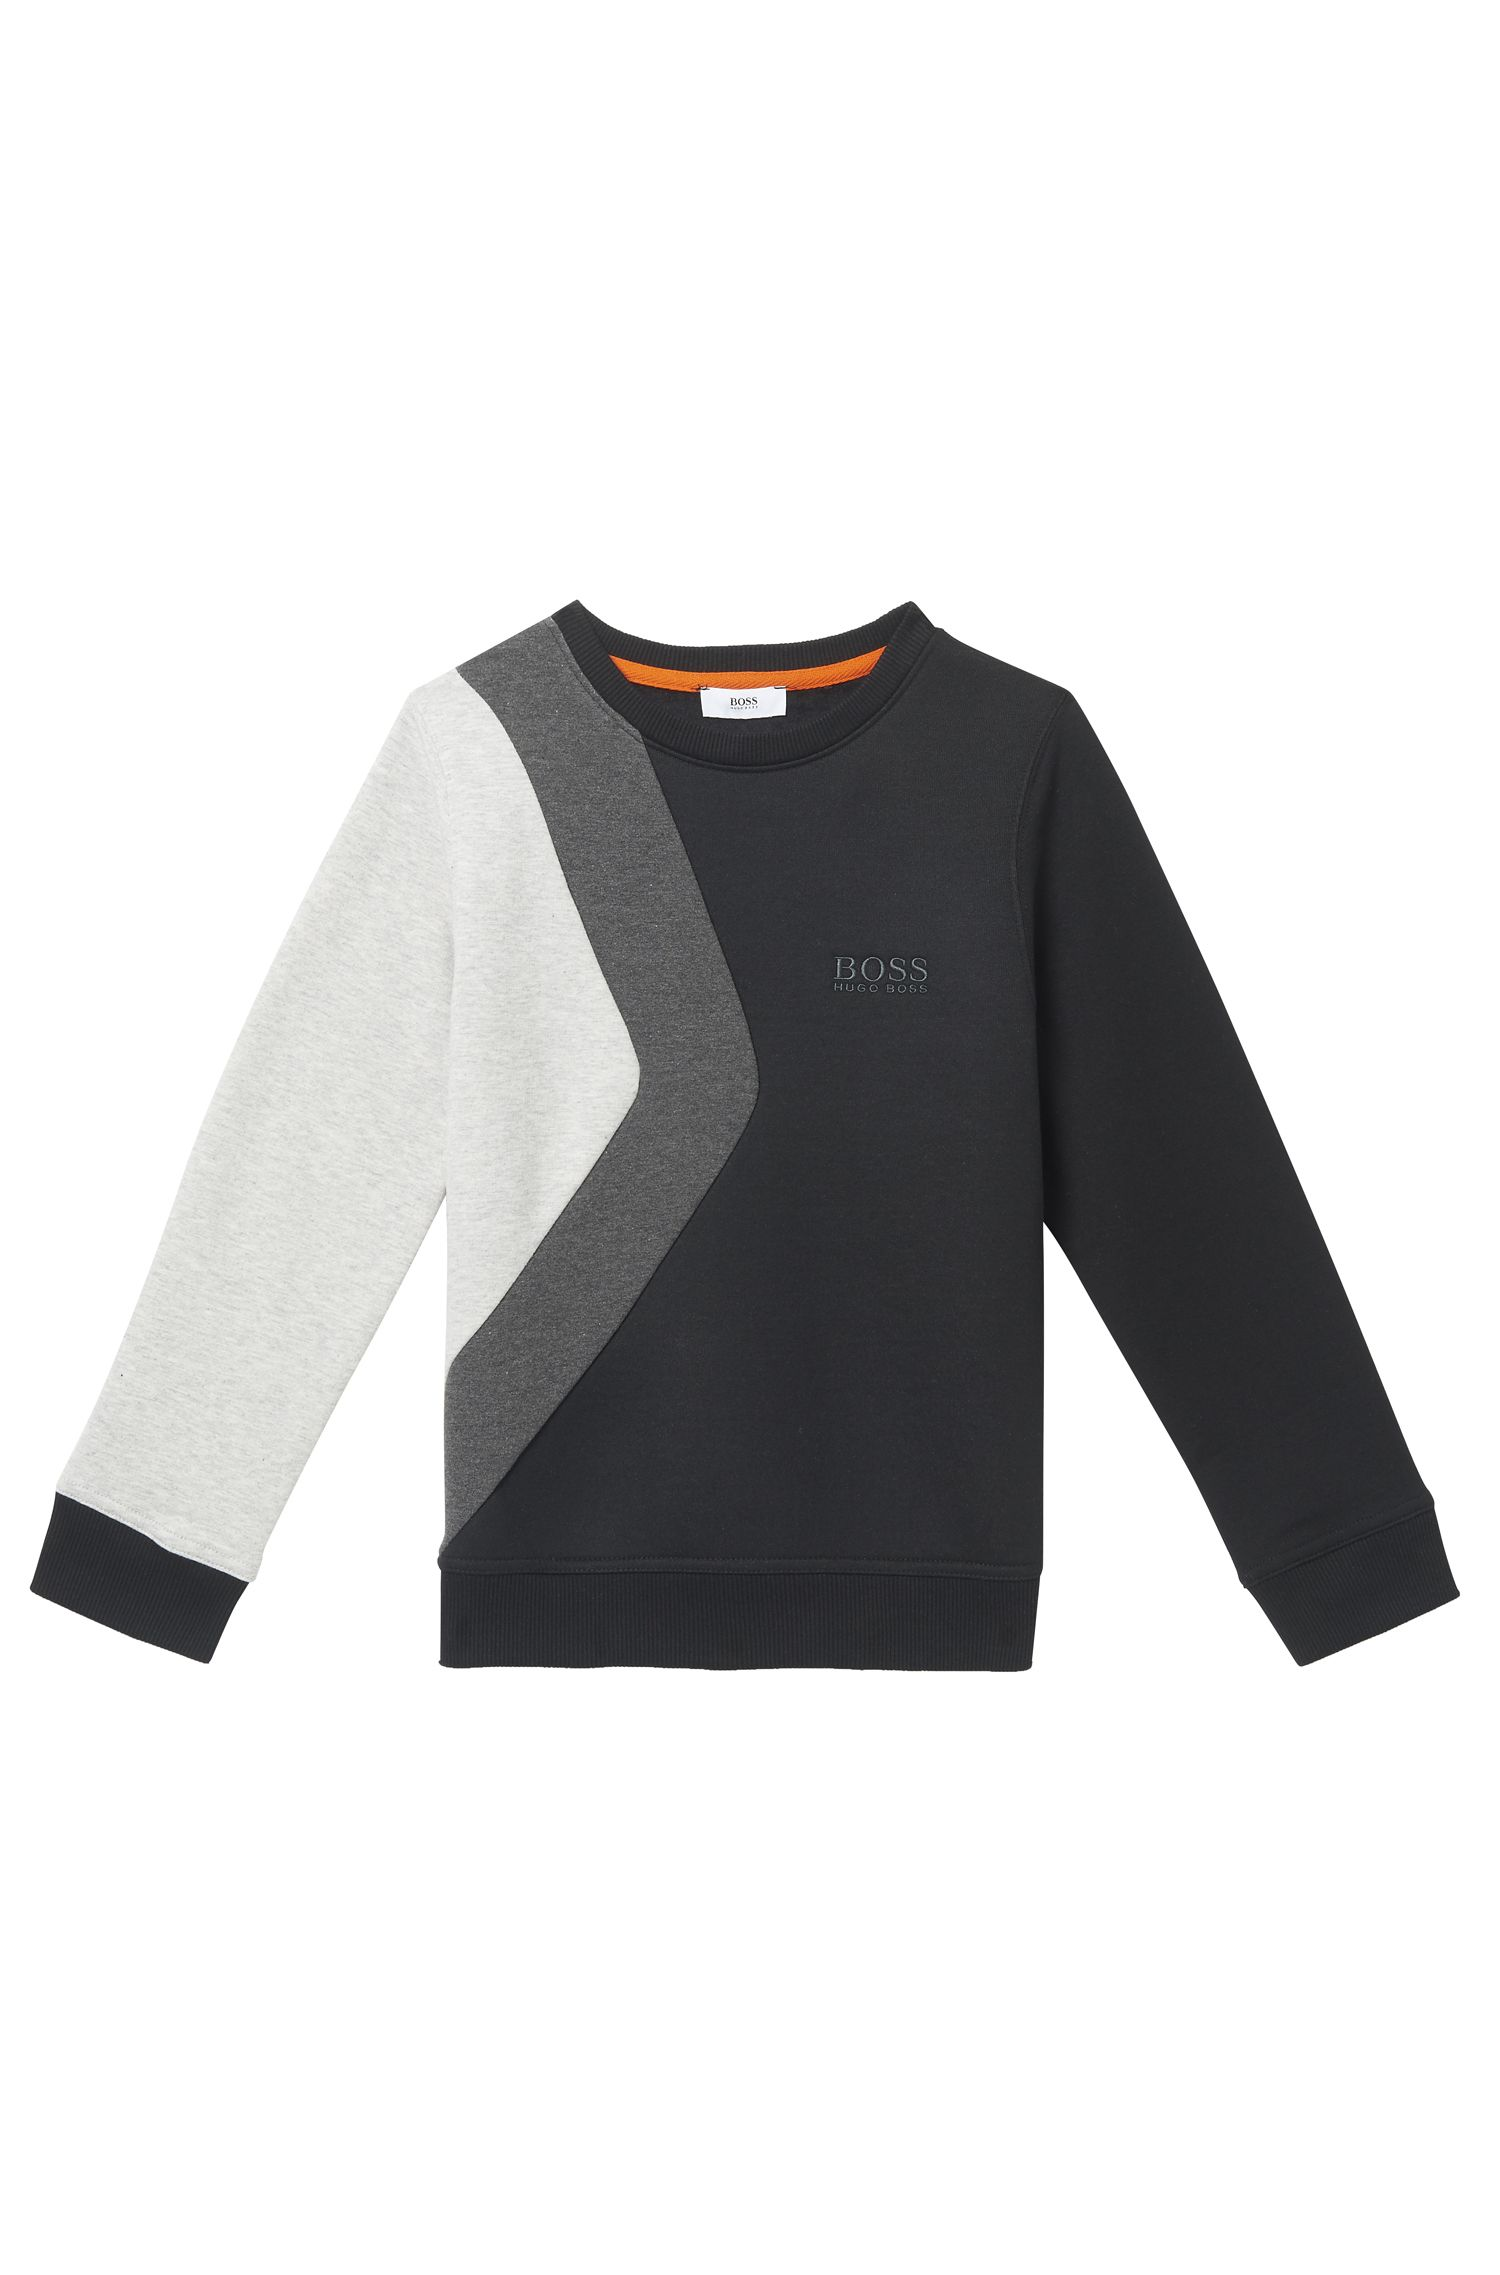 'J25A33' | Boys Cotton Colorblock Sweatshirt